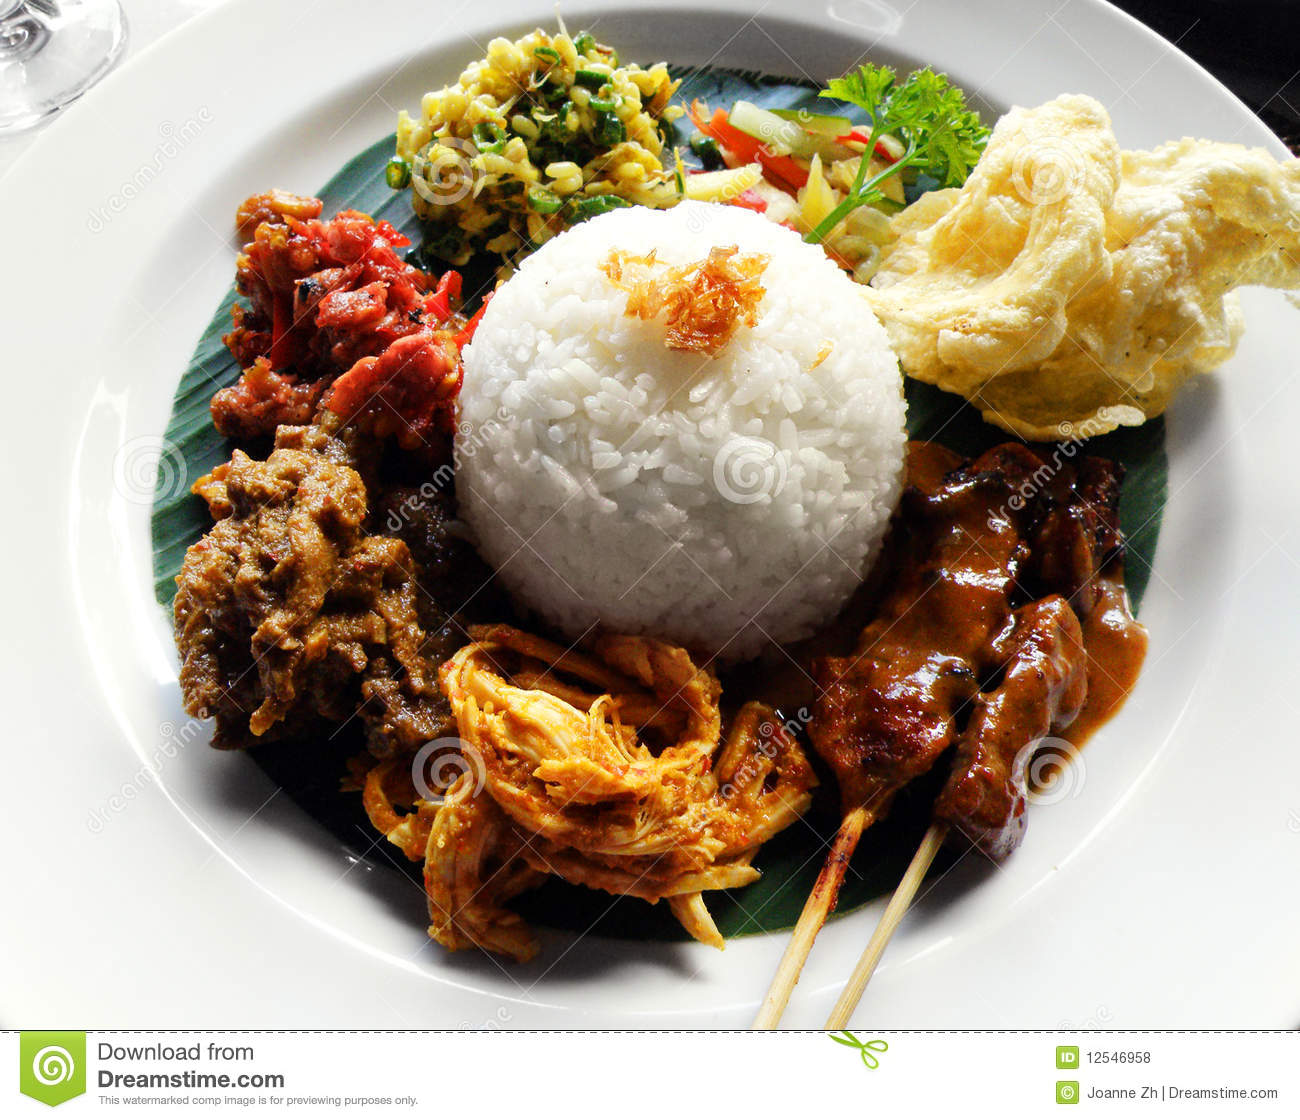 Ethnic Asian Food Nasi Campur Royalty Free Stock Photos   Image